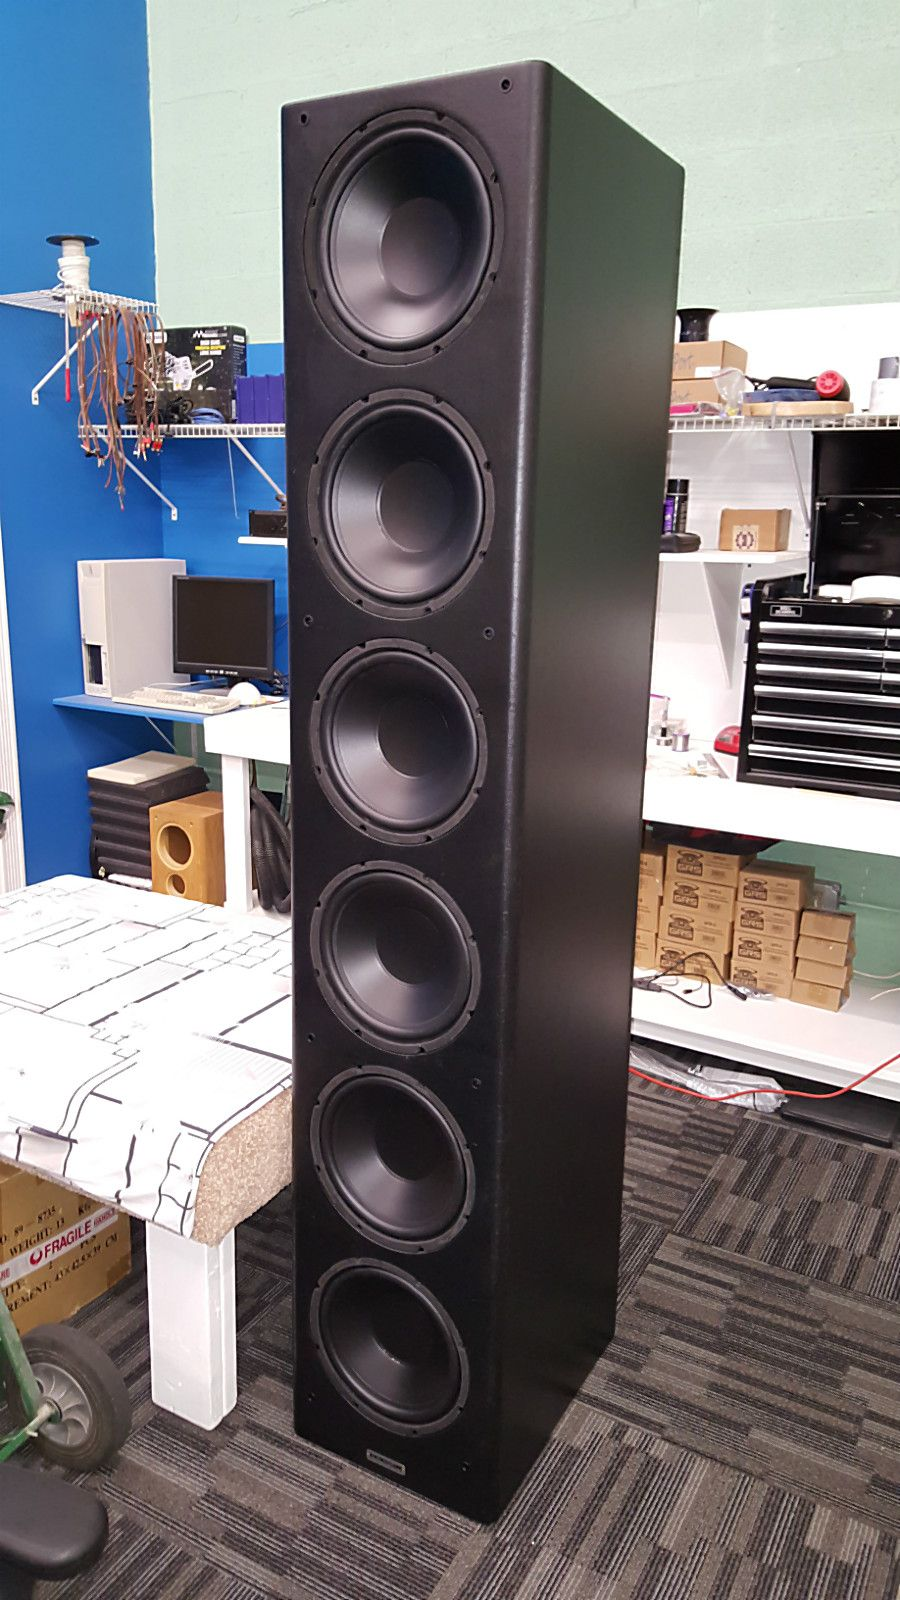 A Power Tower Subwoofer Six 12 Woofers Powered By A 1 000 Watt Class D Amplifier Small Footprint Bi Subwoofer Box Design Speaker Design Speaker Box Design